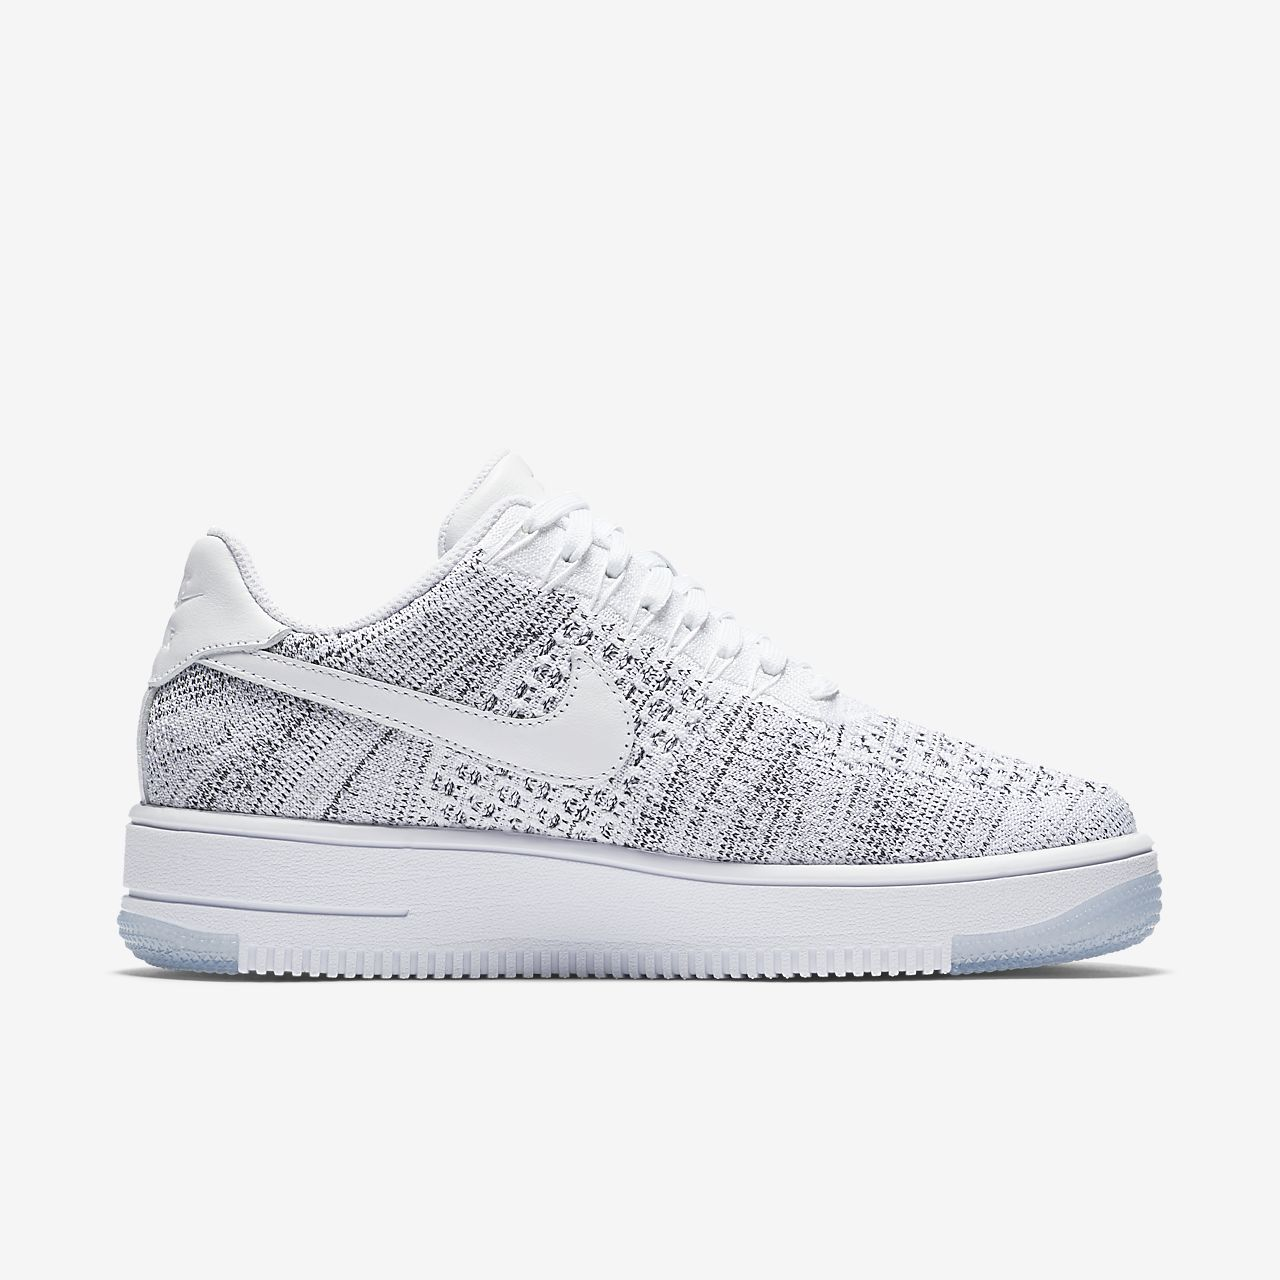 nike men's air force 1 ultra flyknit low trainers nz